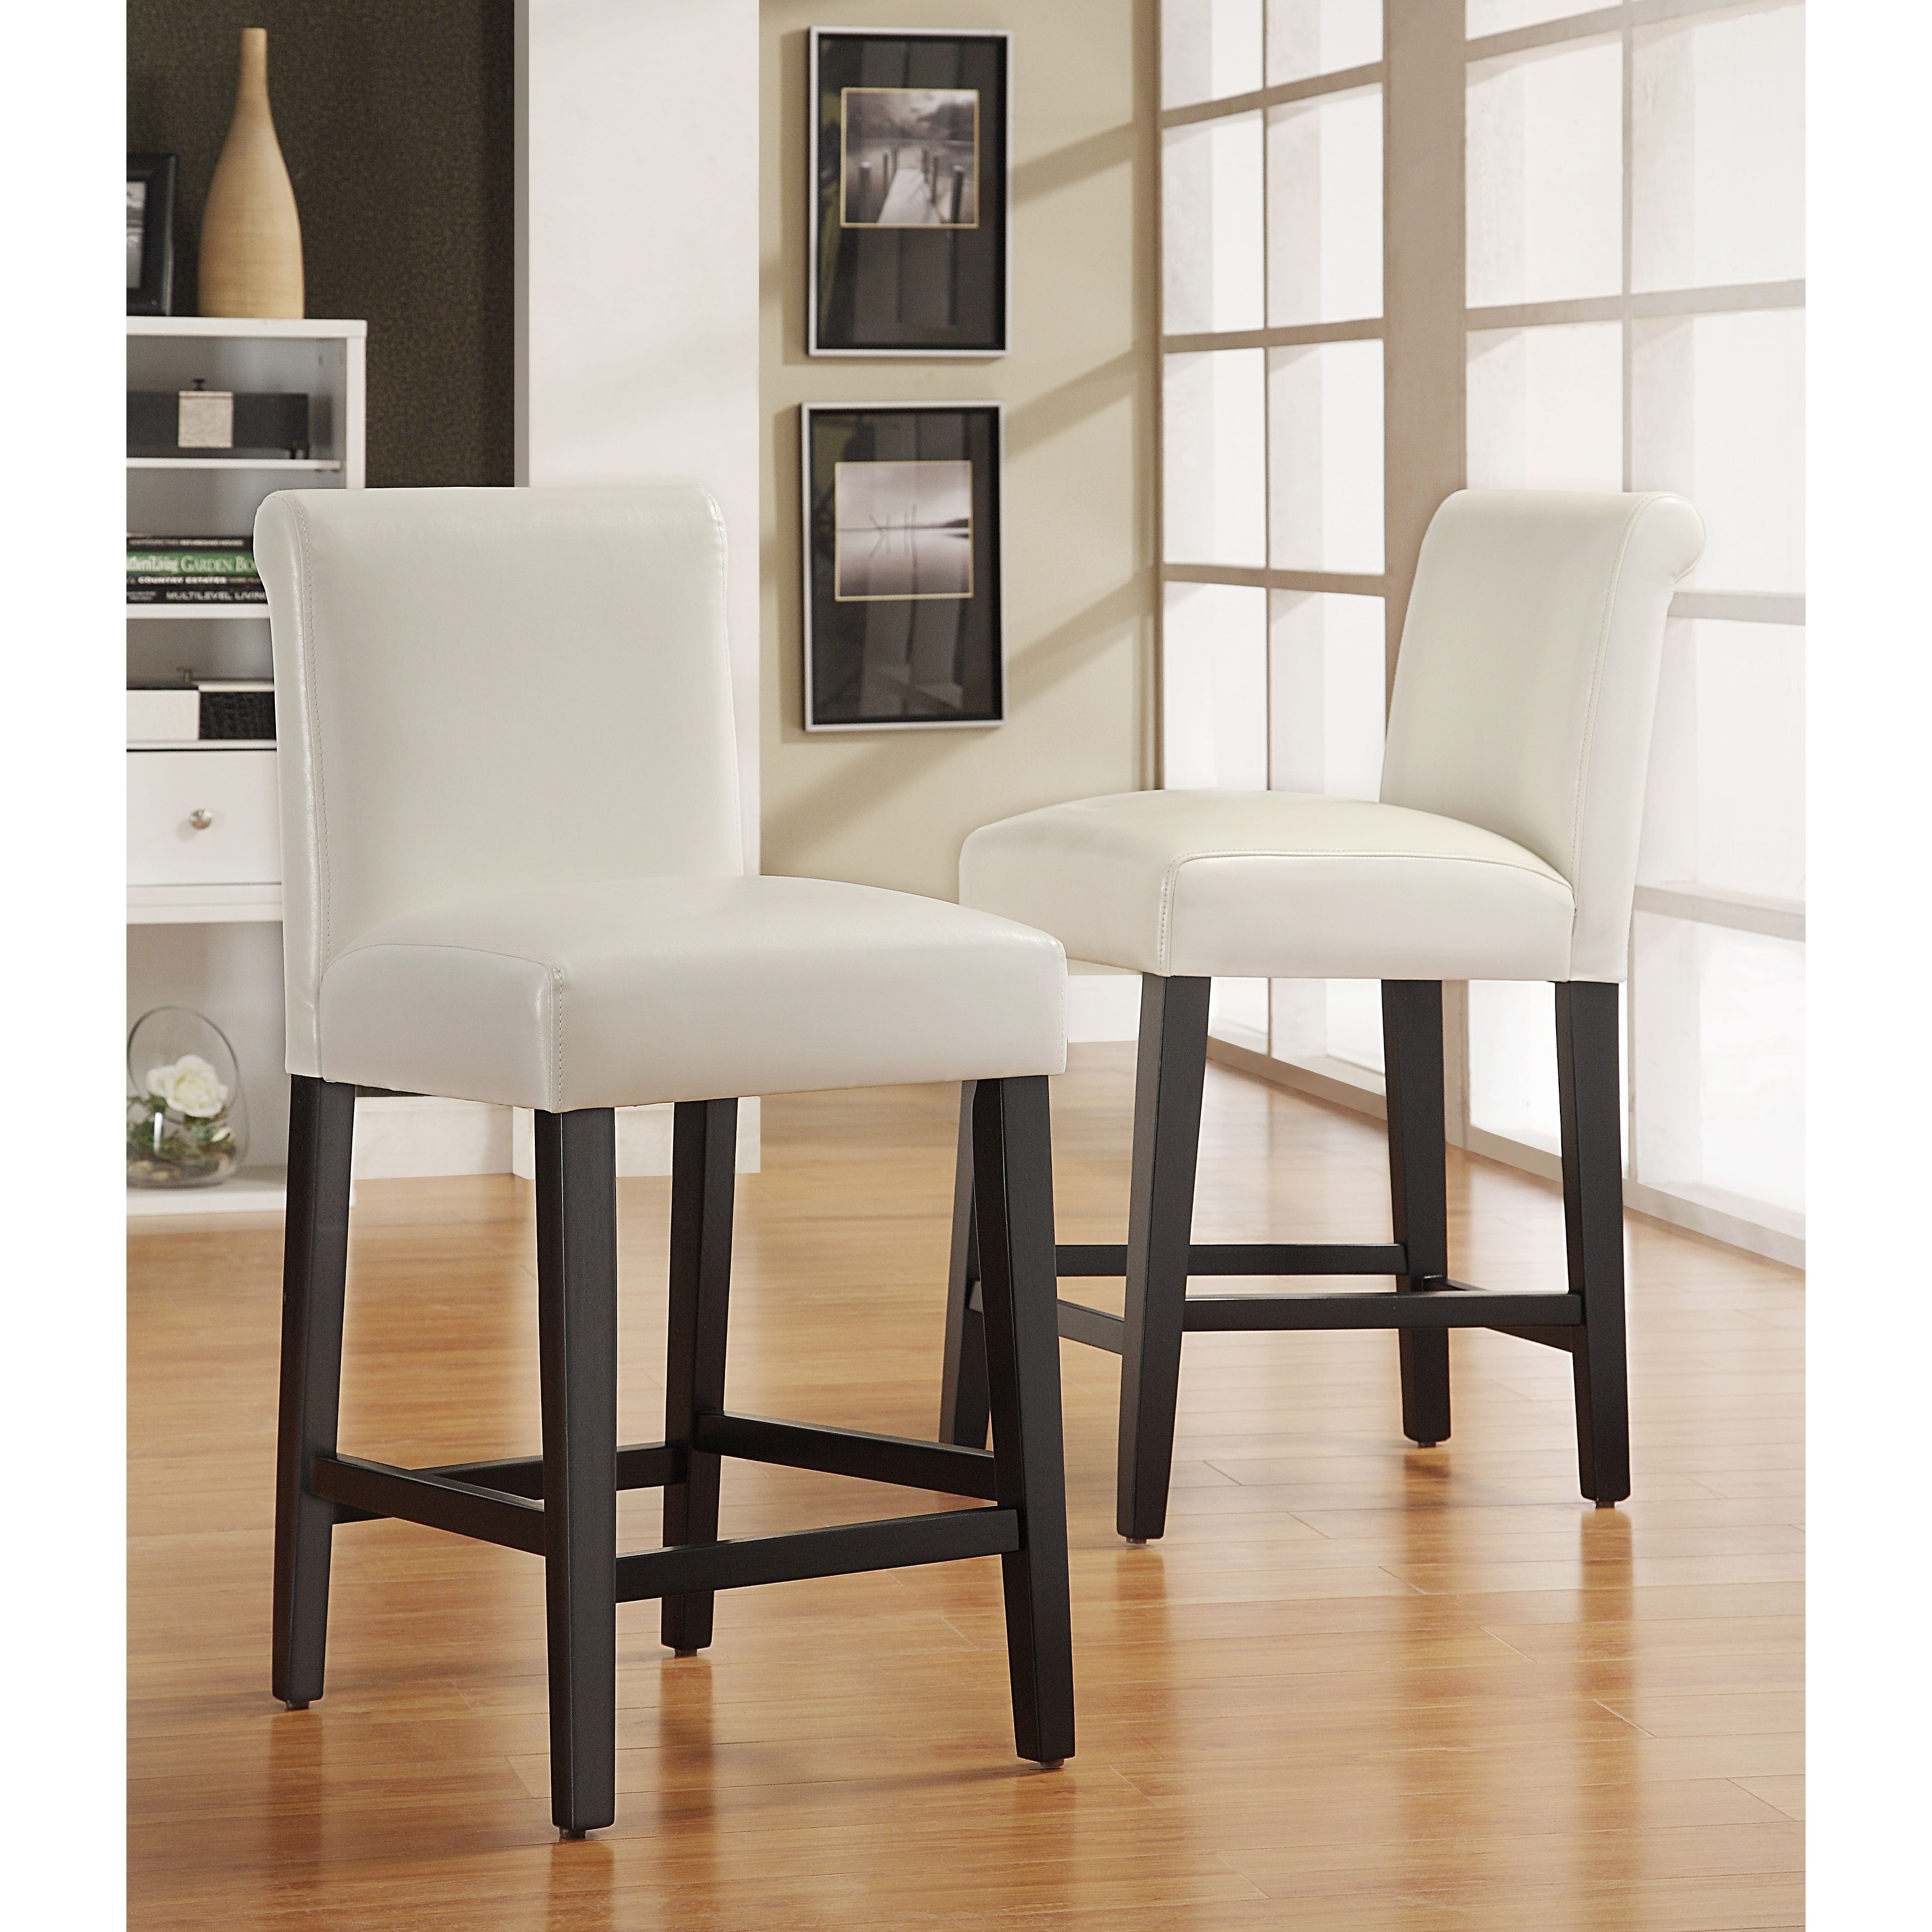 Bennett White Faux Leather 24 Inch Counter Height High Back Stools Set Of 2 By Inspire Q Bold Overstock 5163069